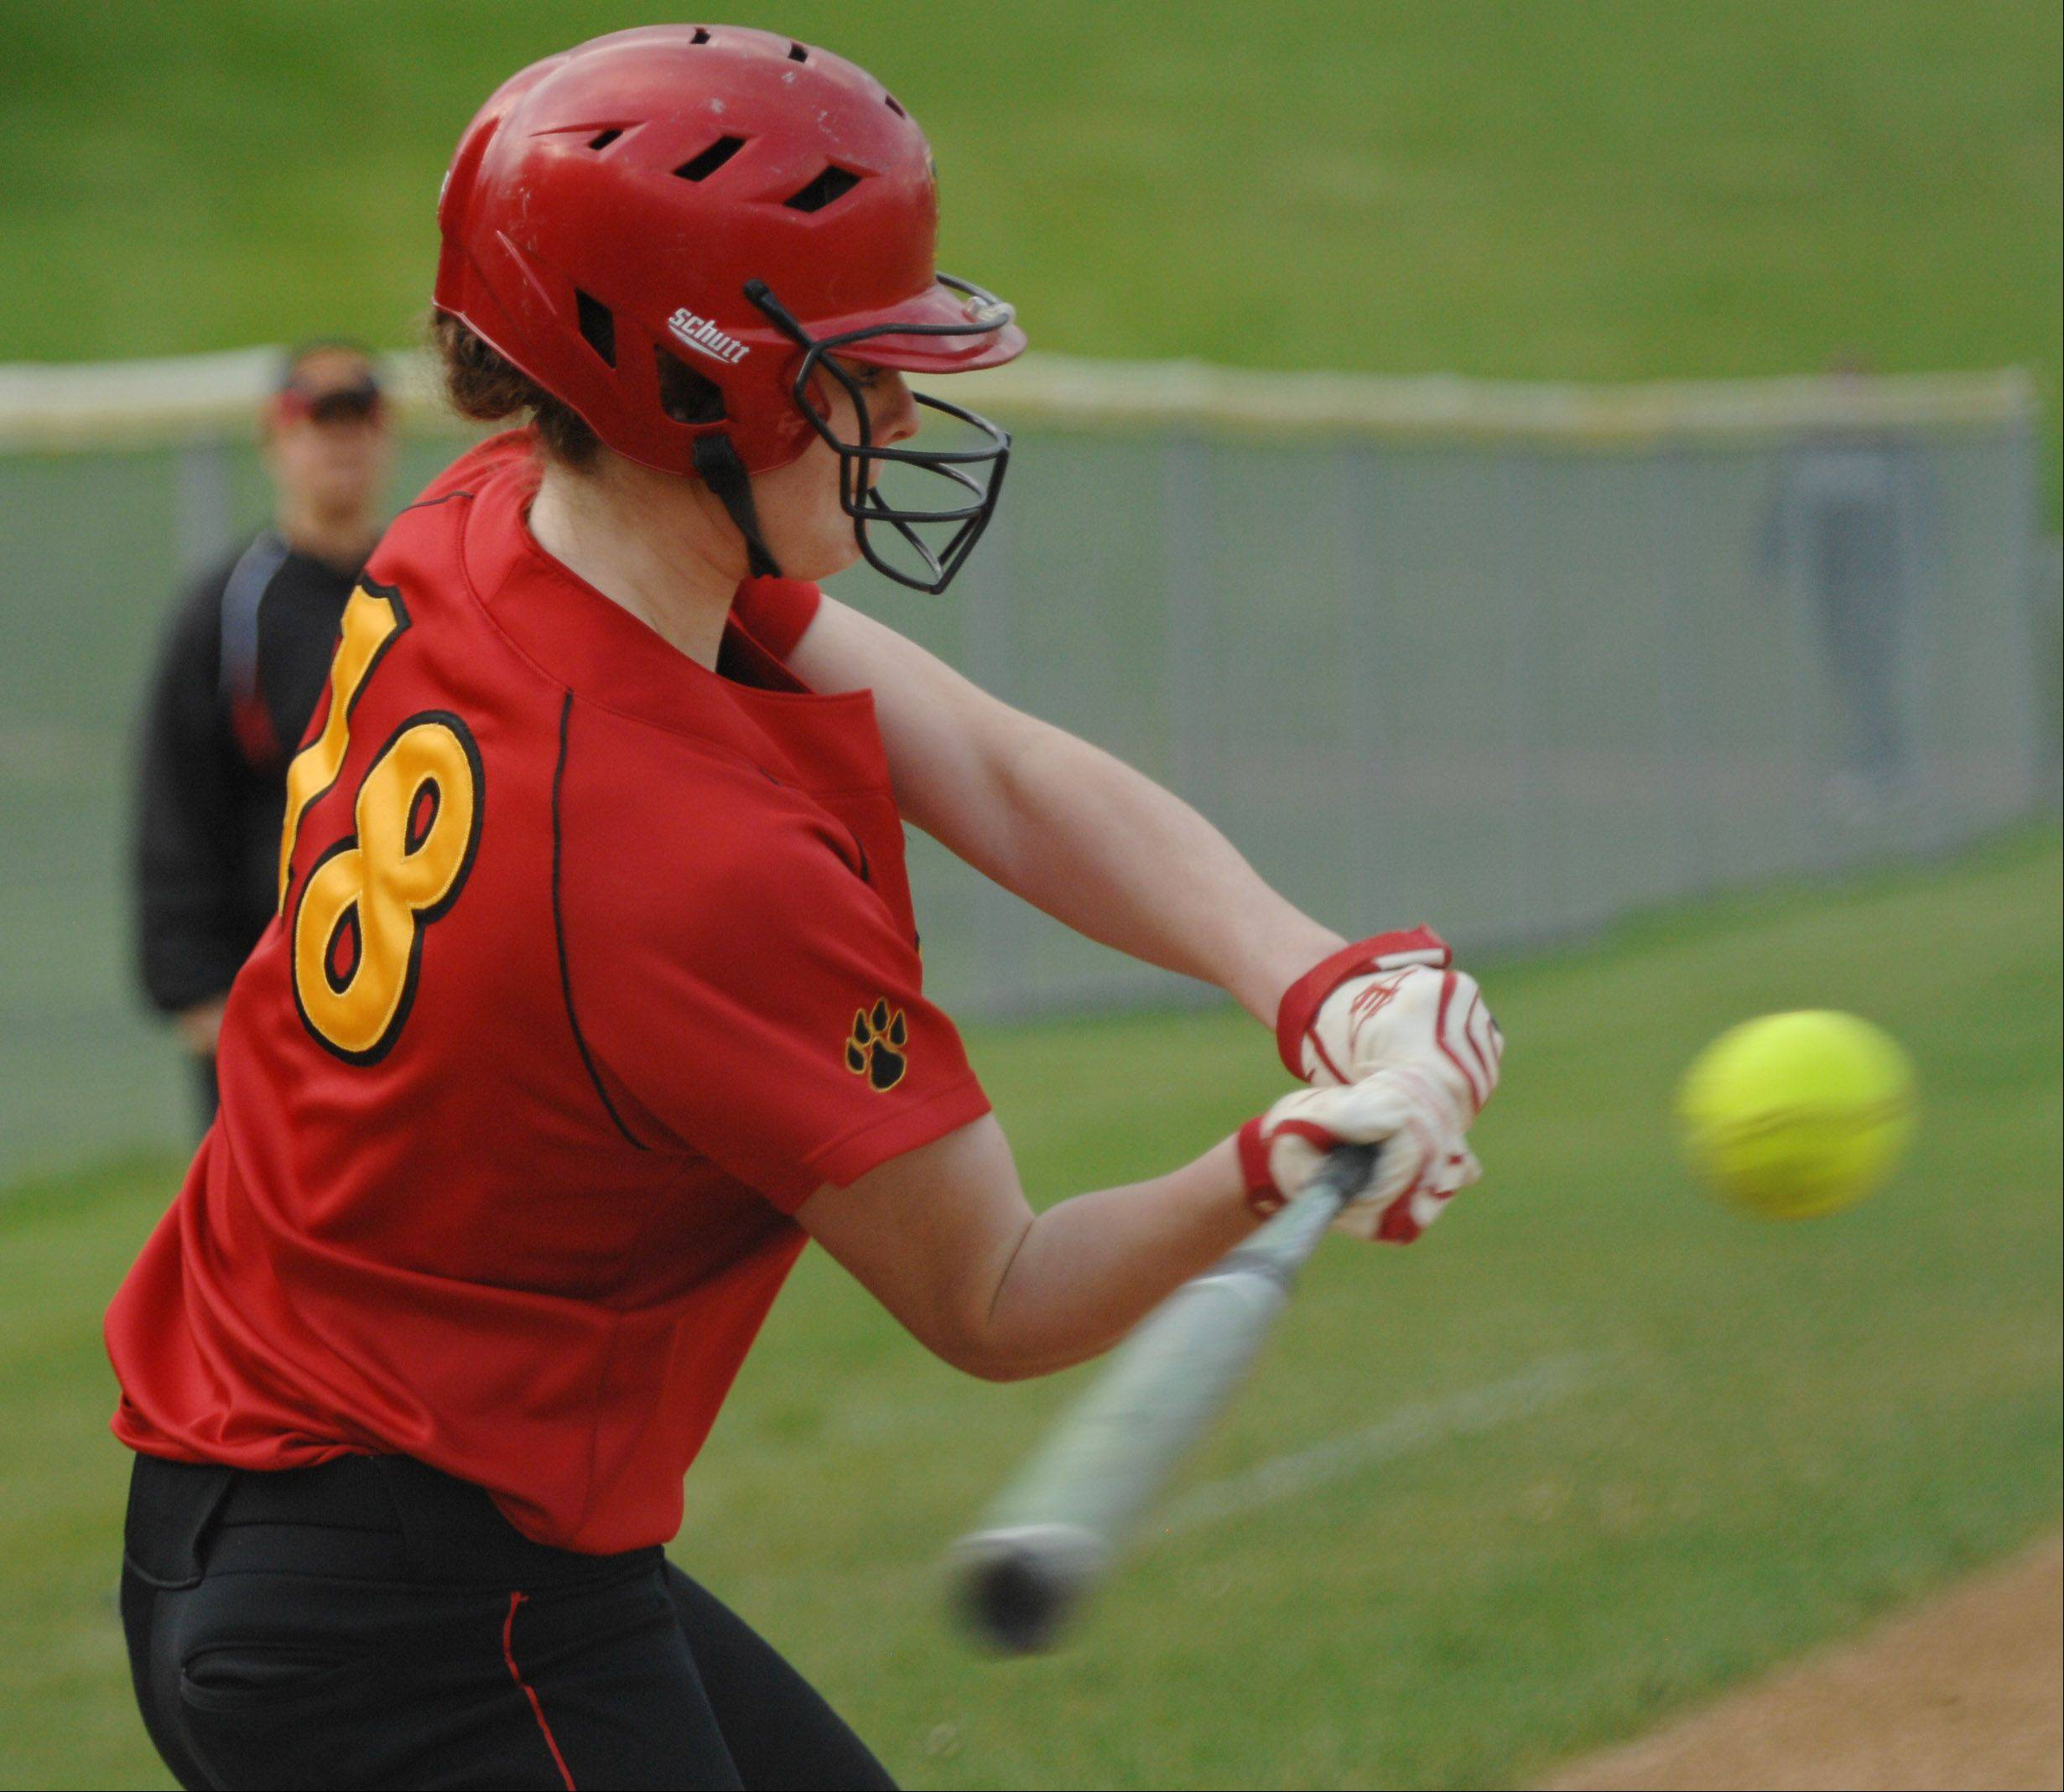 Katie Ryan is looking to cap what has been a powerful career at Batavia with a big senior season.